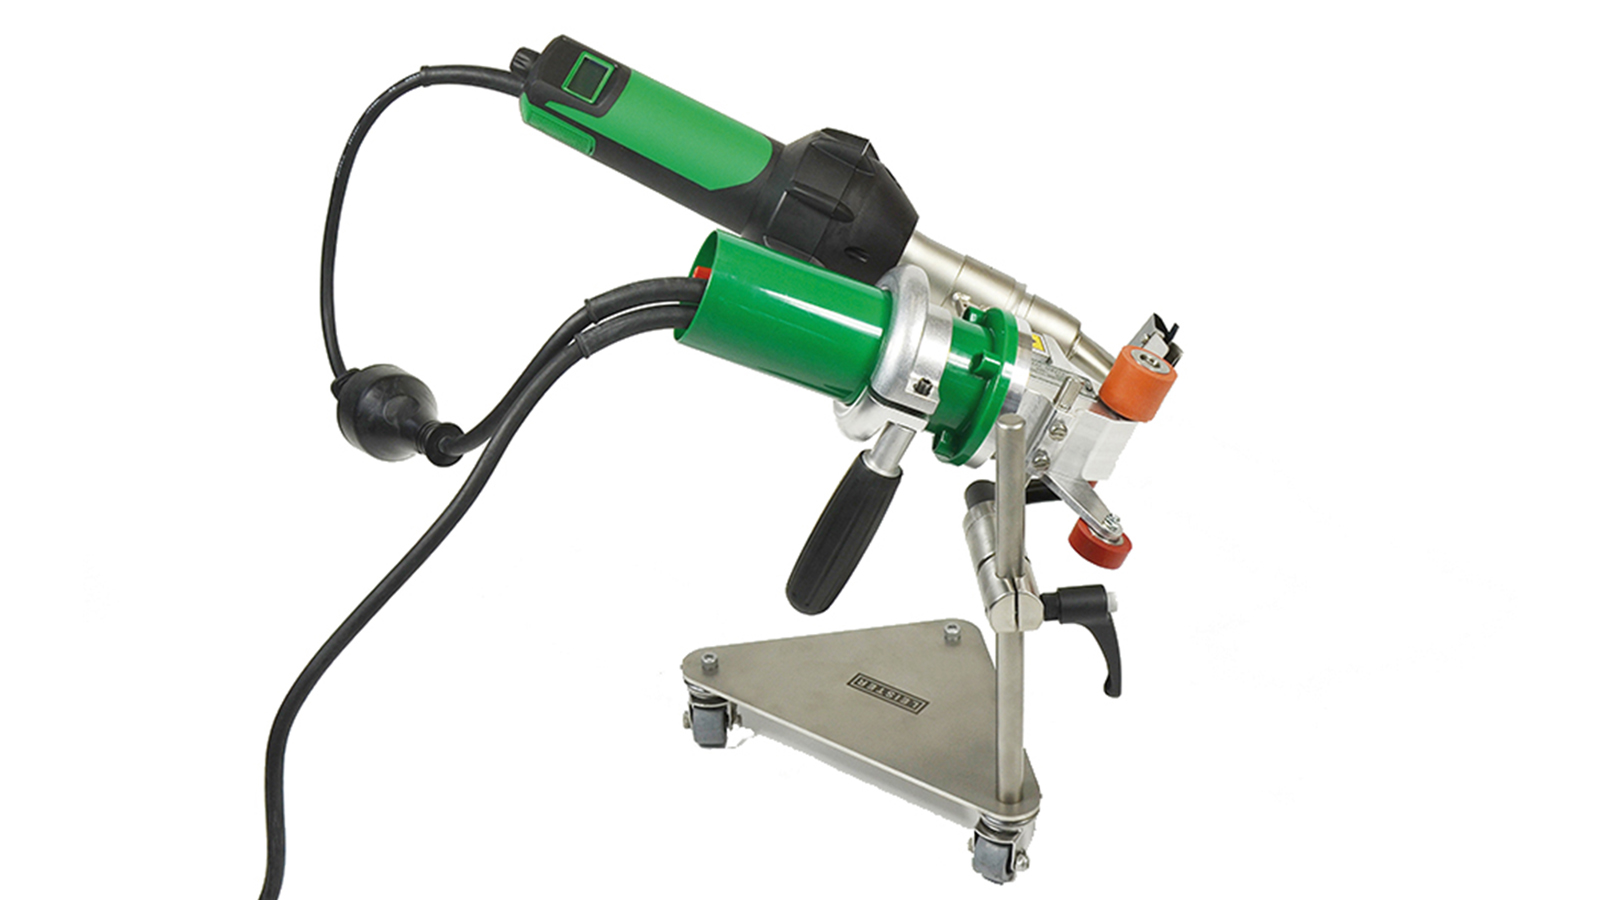 https://leister.azureedge.net/-/media/images/leister_internet/320-ltag-pw/322-products/hot-air-welder/triac-drive-at-with-guidance/leister_hot-air-welder_triac-drive-at-with-guiding-help_gallery_1.jpg?revision=65caca80-83bb-4b05-8700-ce2041399c42